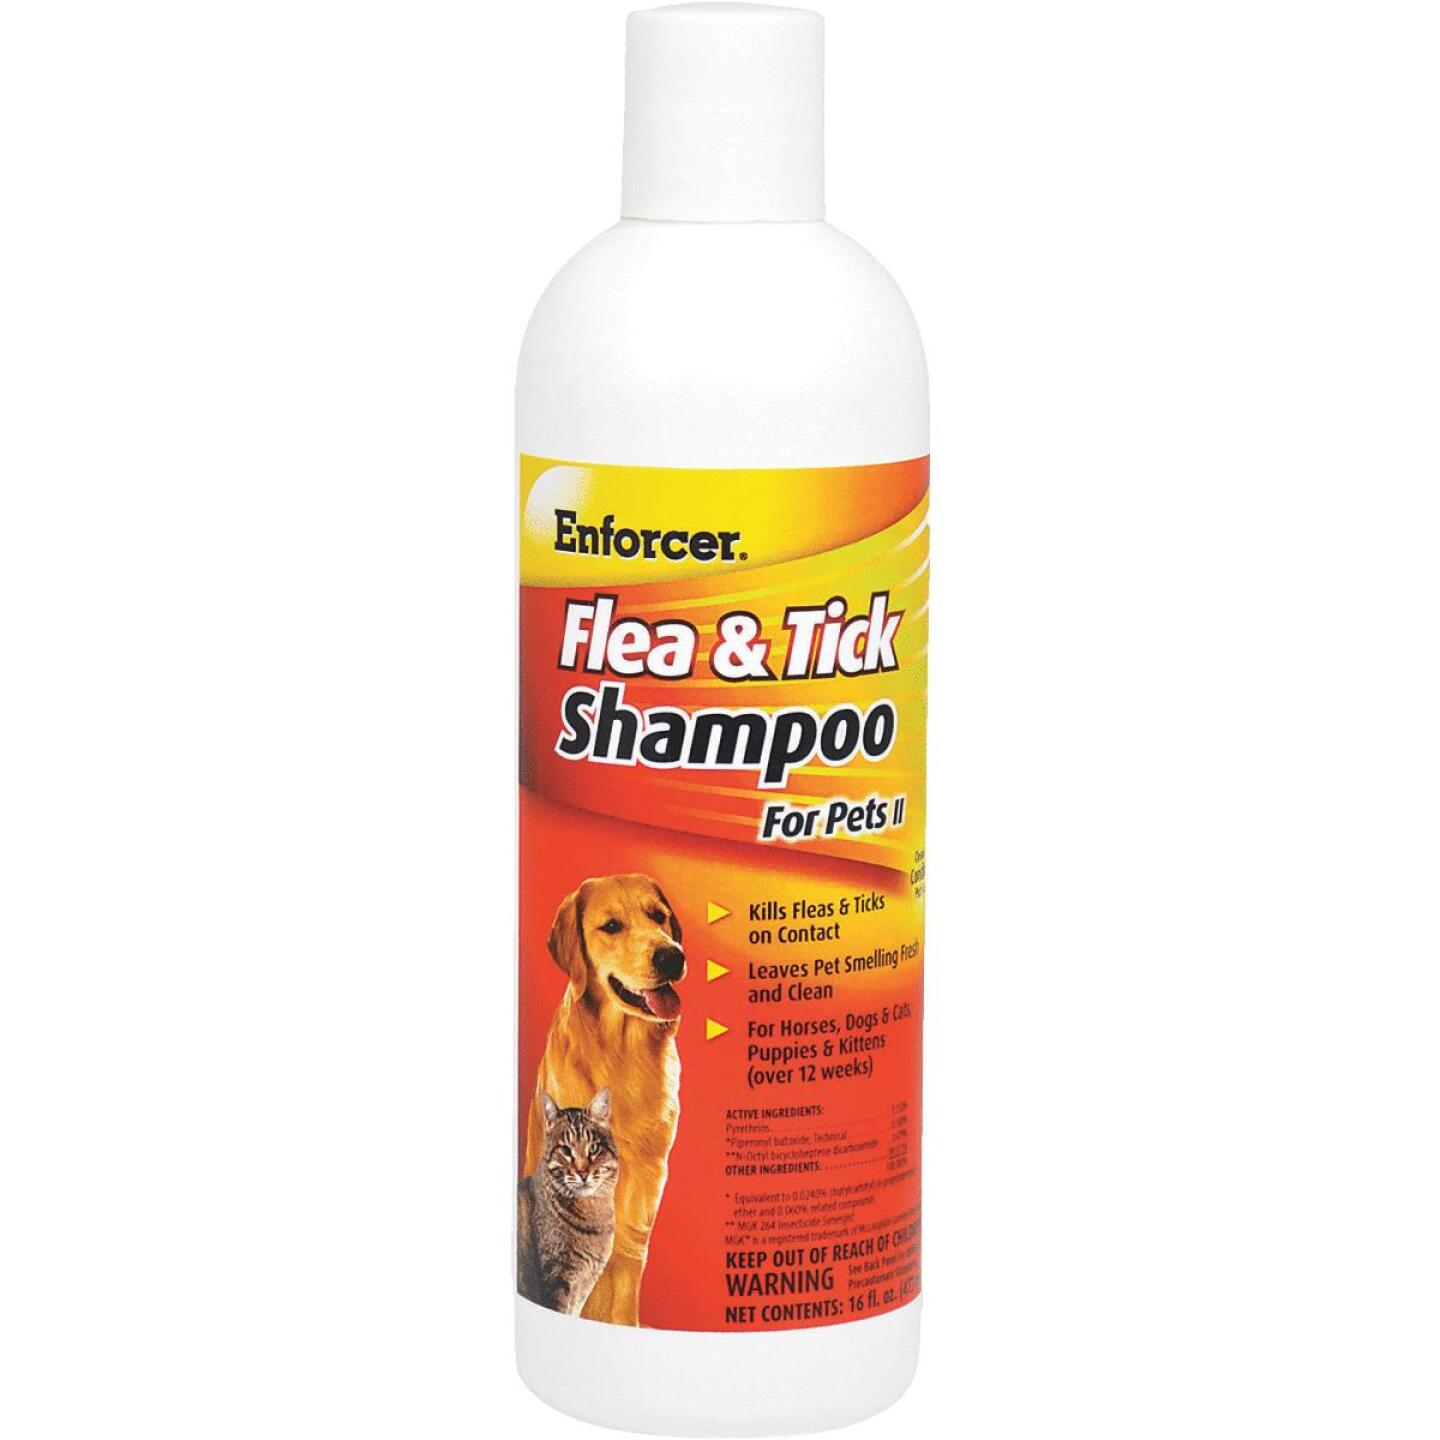 Enforcer 16 Oz. Flea & Tick Pet Shampoo Image 1